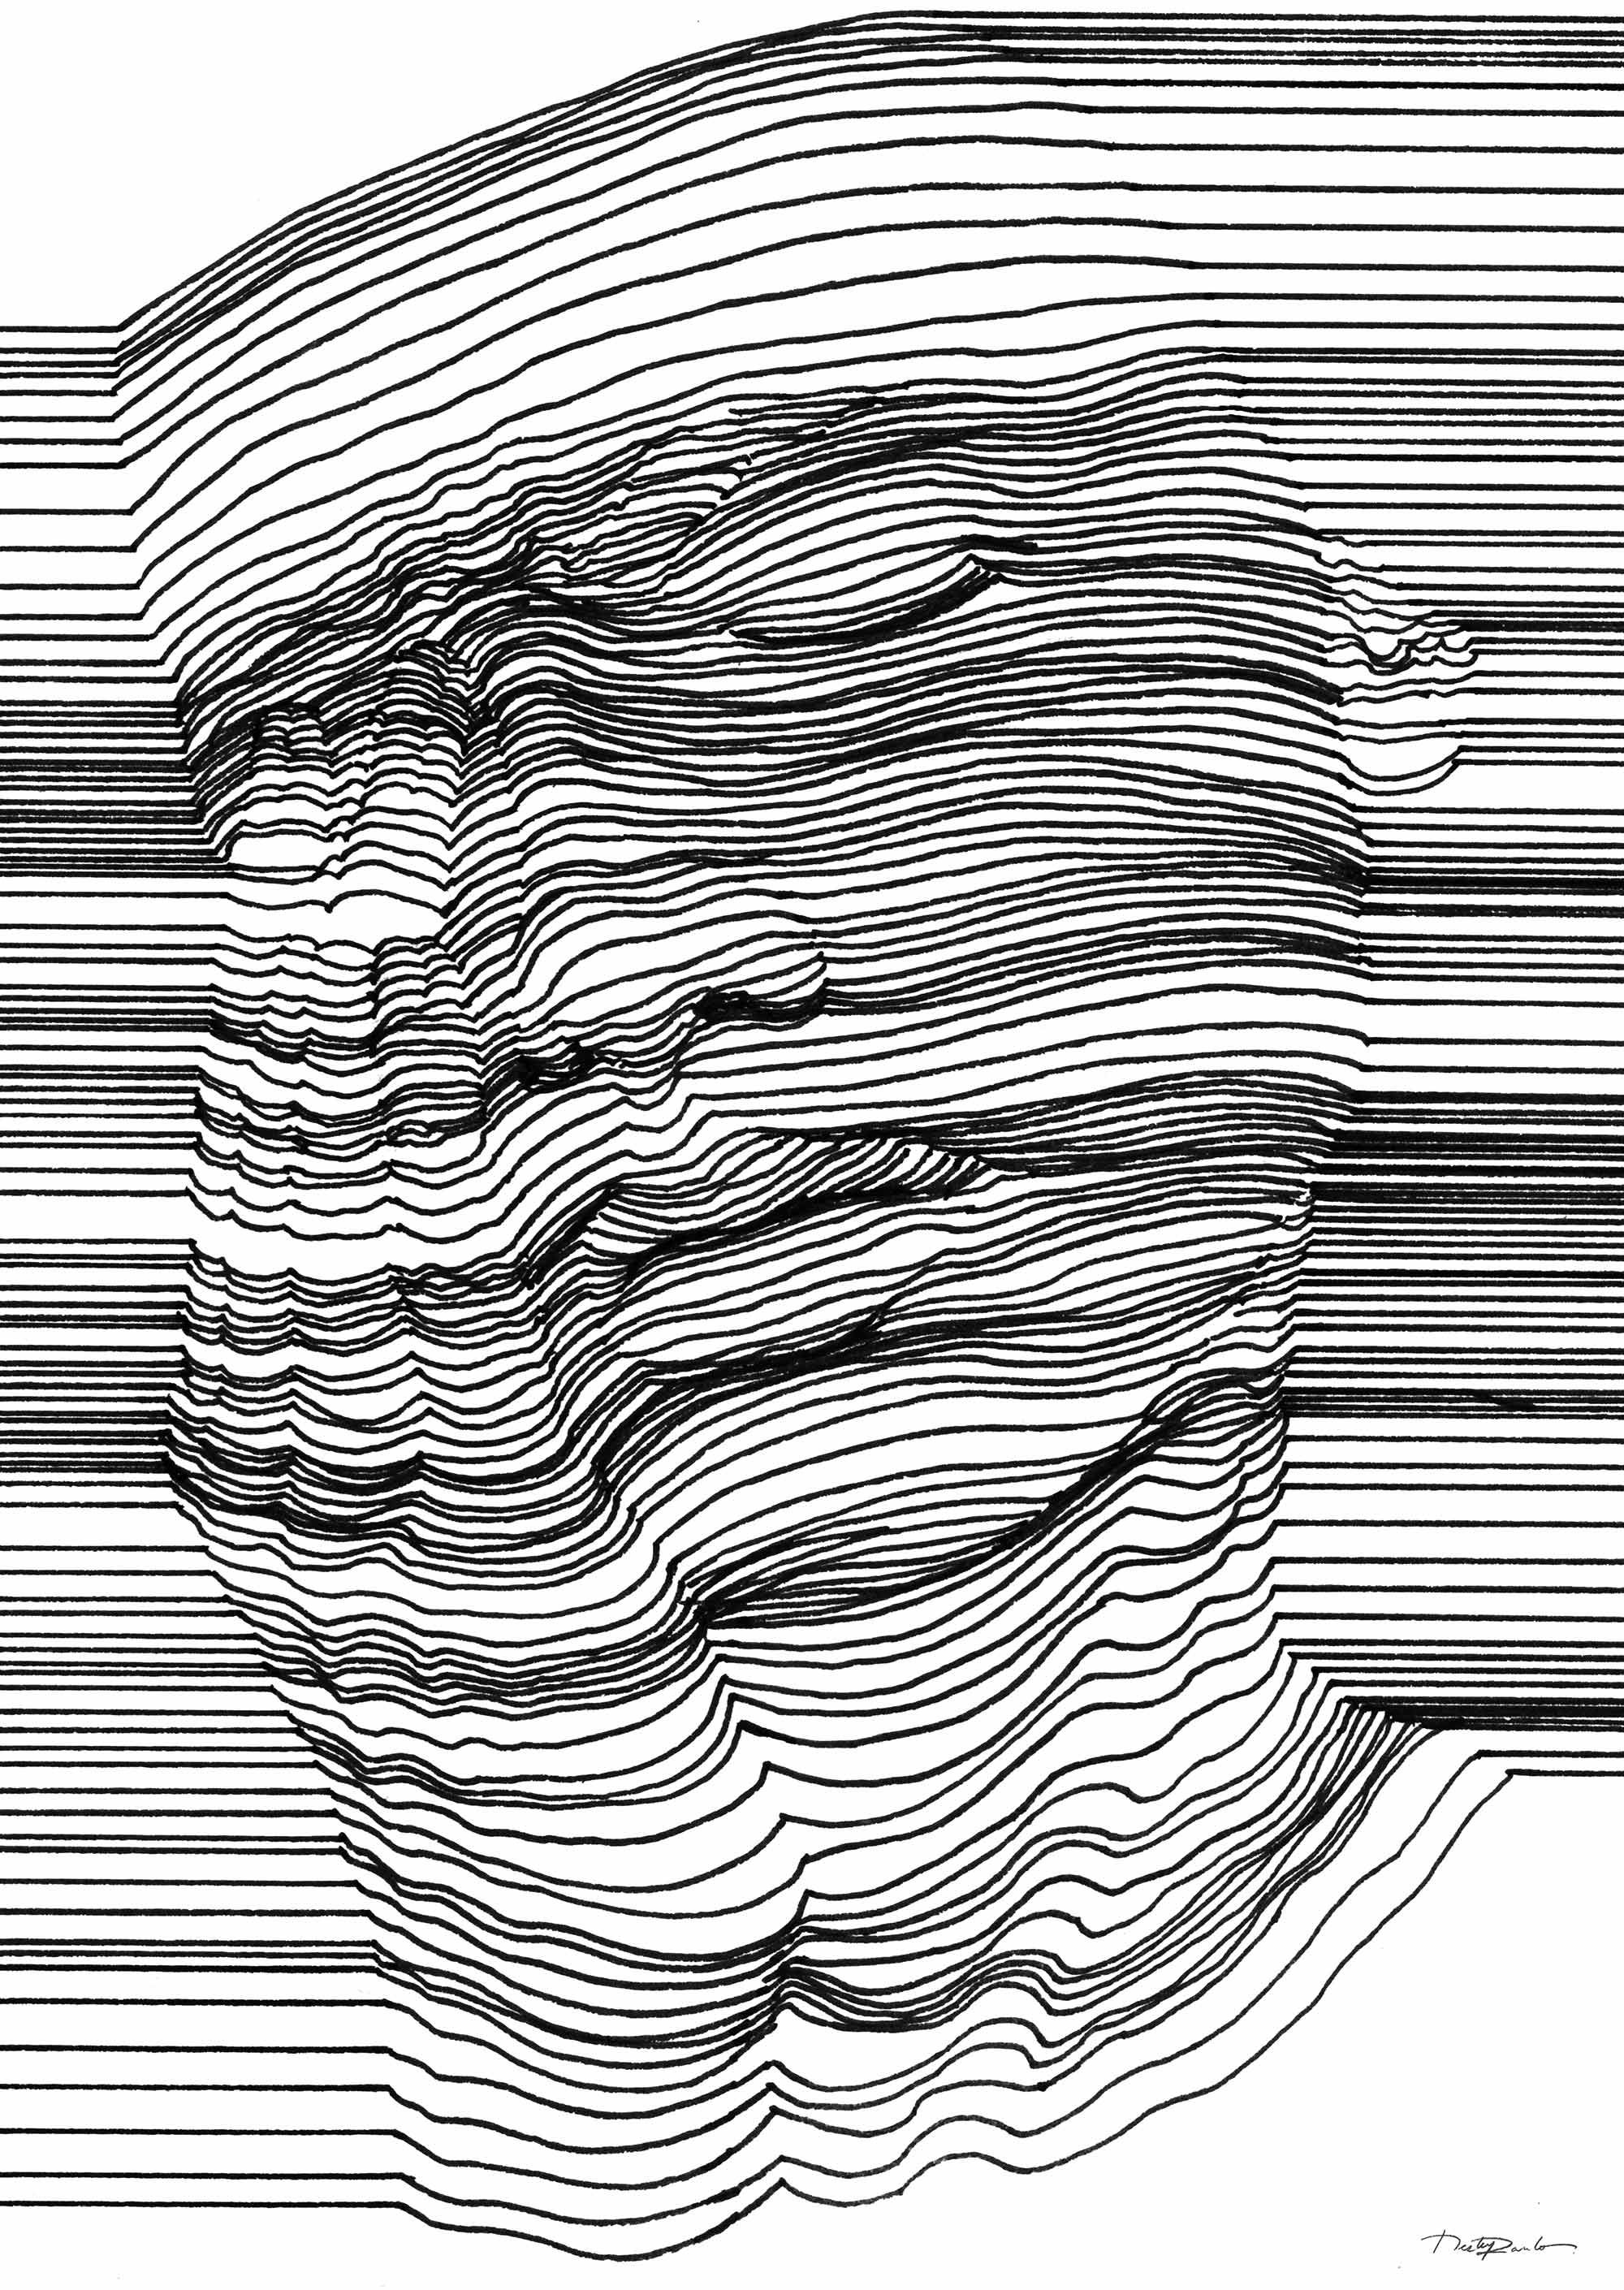 3d Line Drawing : Sensual d line art by nester formentera drawings